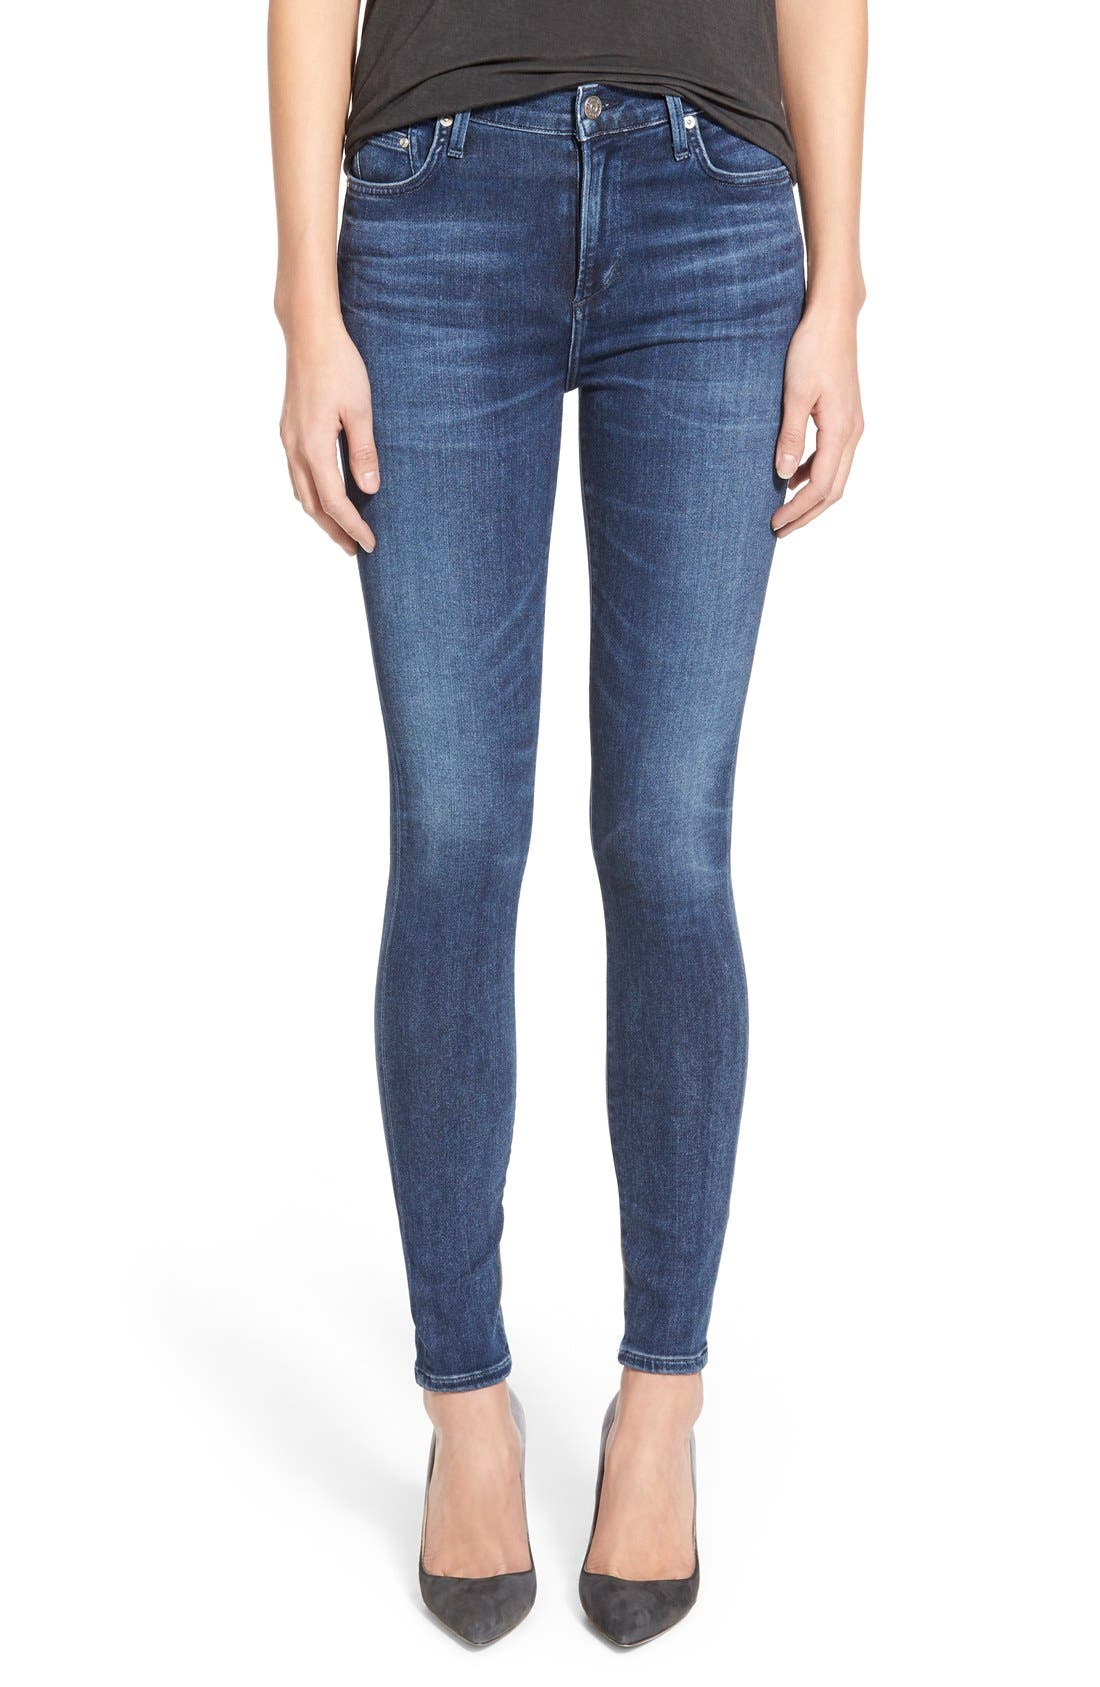 Alternate Image 1 Selected - Citizens of Humanity Sculpt - Rocket High Waist Skinny Jeans (Waverly)